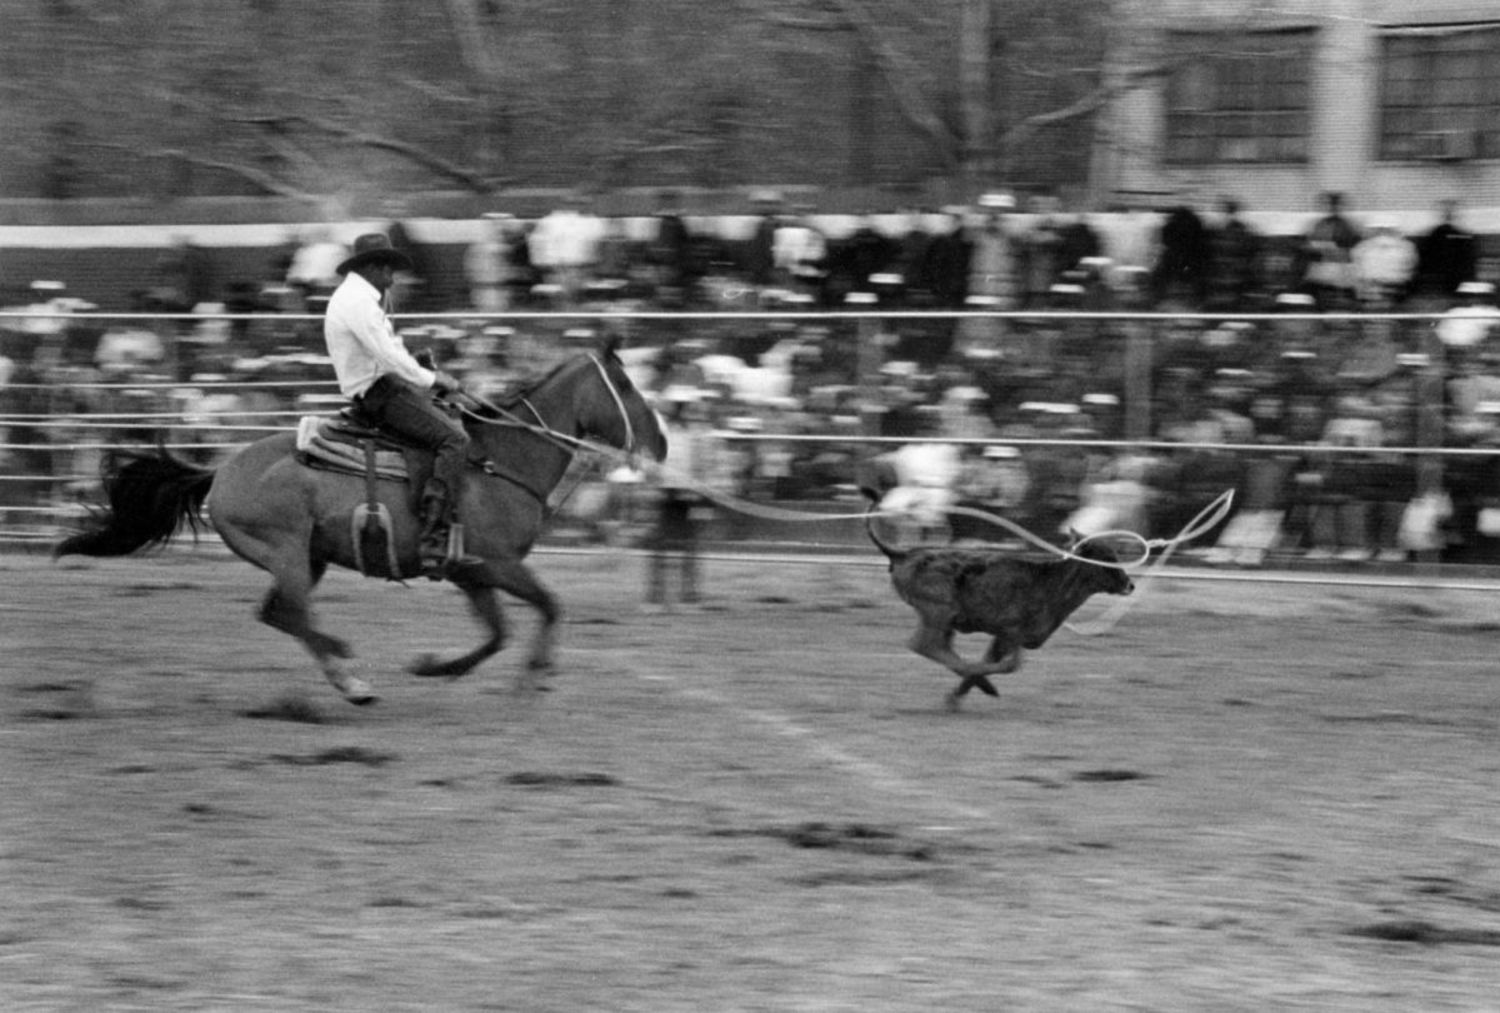 The Fifth Annual Black World Championship Rodeo, Colonel Charles Young Playground, New York, 1988.